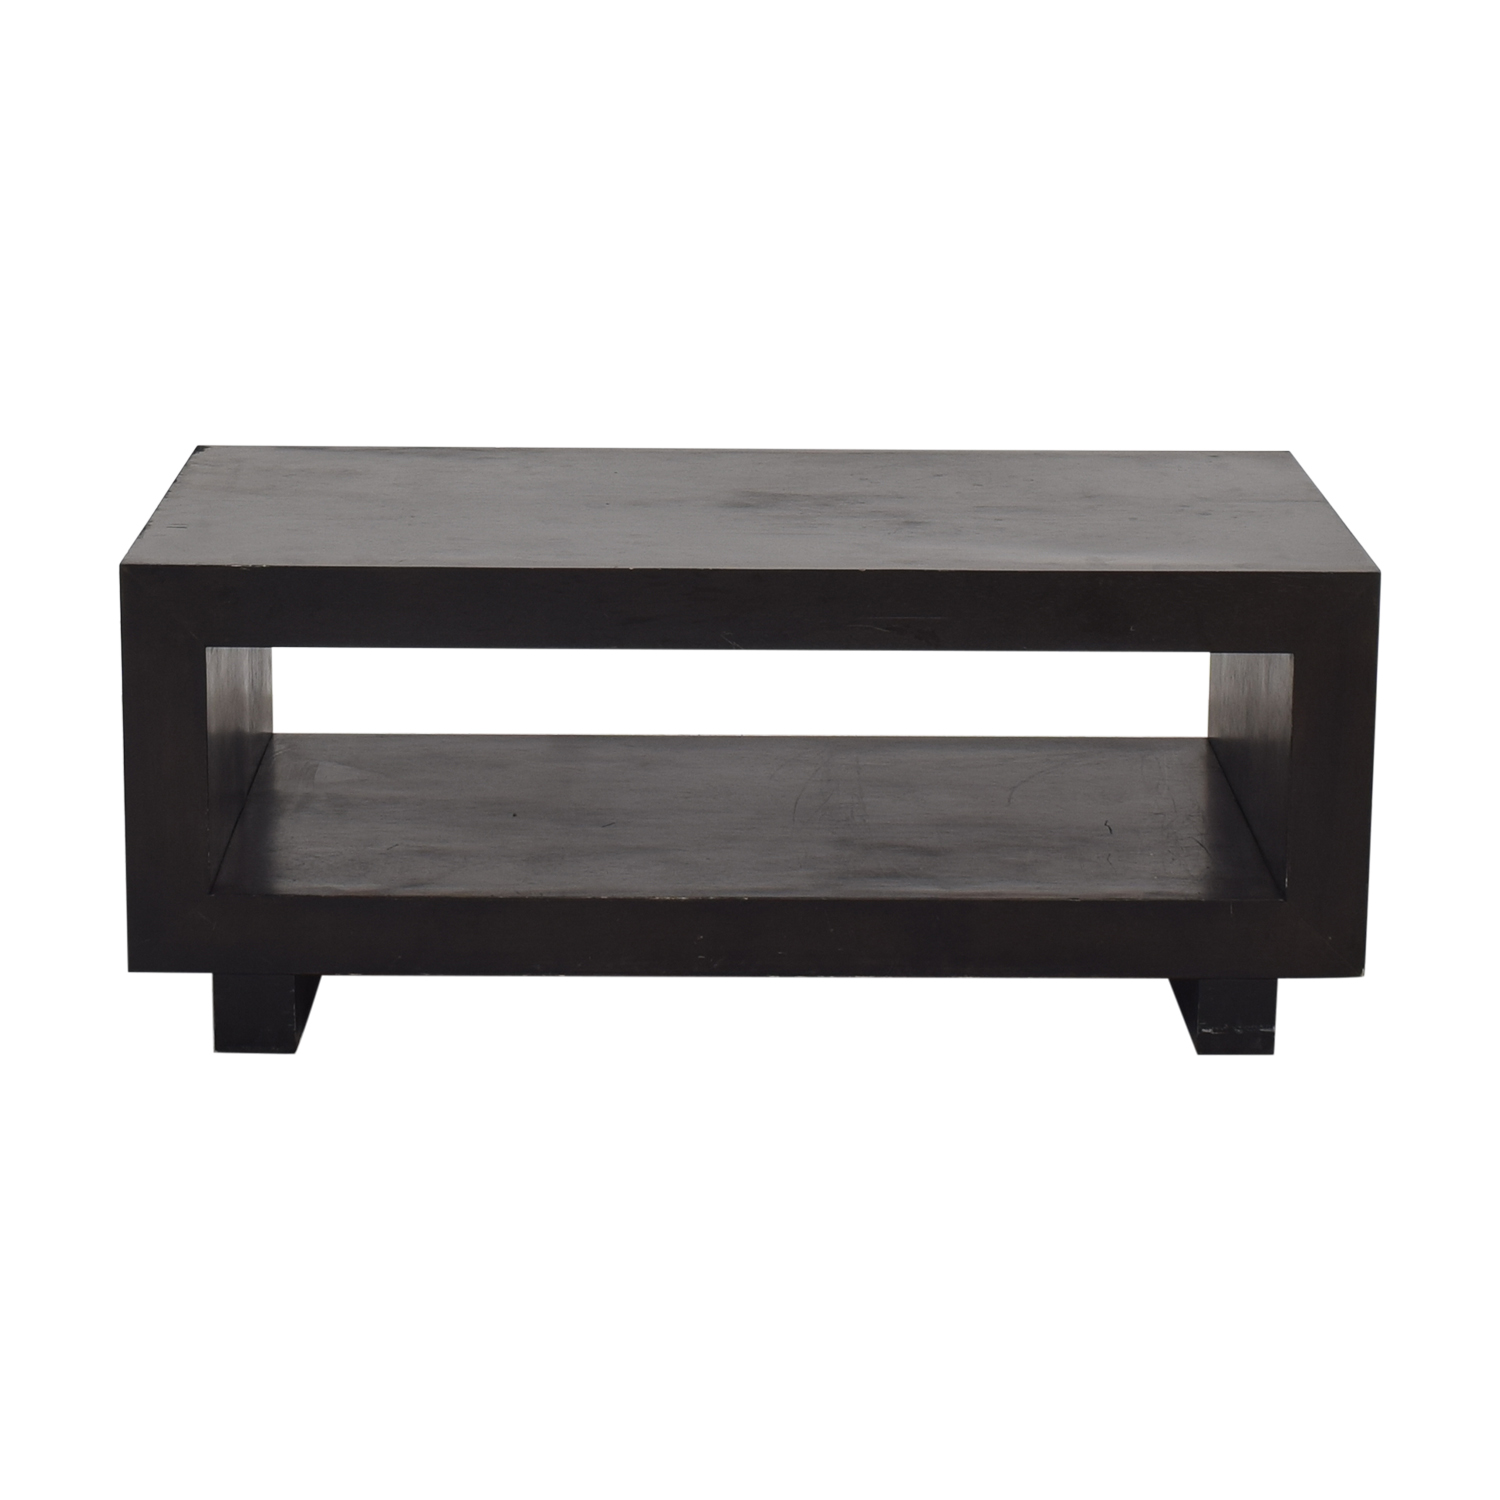 West Elm West Elm Media Console second hand